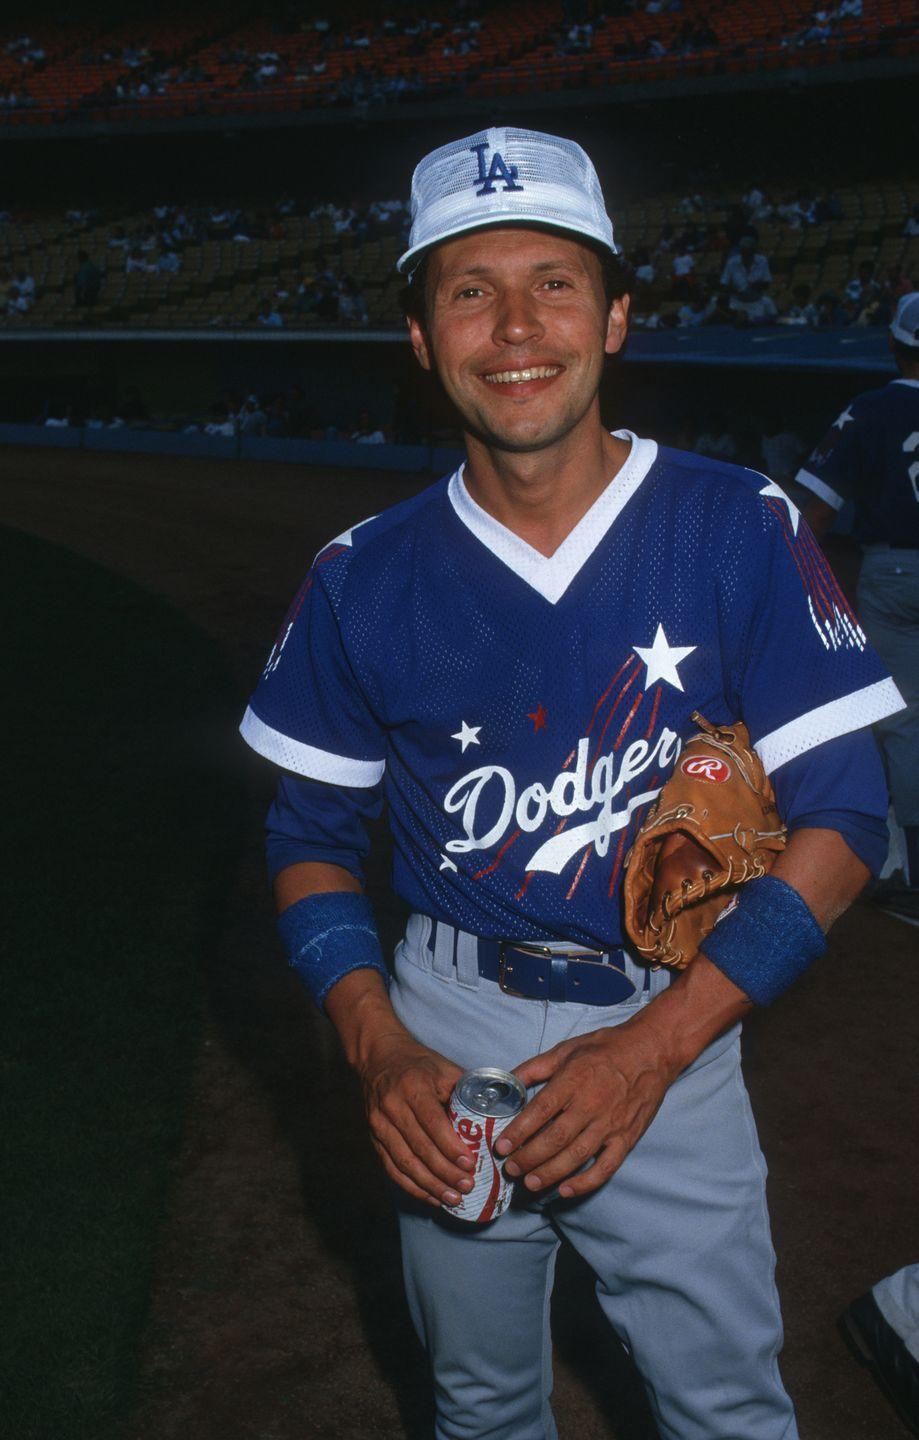 """<p>A known baseball fanatic (here he is playing in a celebrity all-star game), Billy Crystal <a href=""""https://twitter.com/herdbaseball/status/766652200974036994?lang=en"""" rel=""""nofollow noopener"""" target=""""_blank"""" data-ylk=""""slk:attended Marshall University on a baseball scholarship"""" class=""""link rapid-noclick-resp"""">attended Marshall University on a baseball scholarship</a> for one year. His baseball career ended when he had to drop out after his freshman year. </p>"""